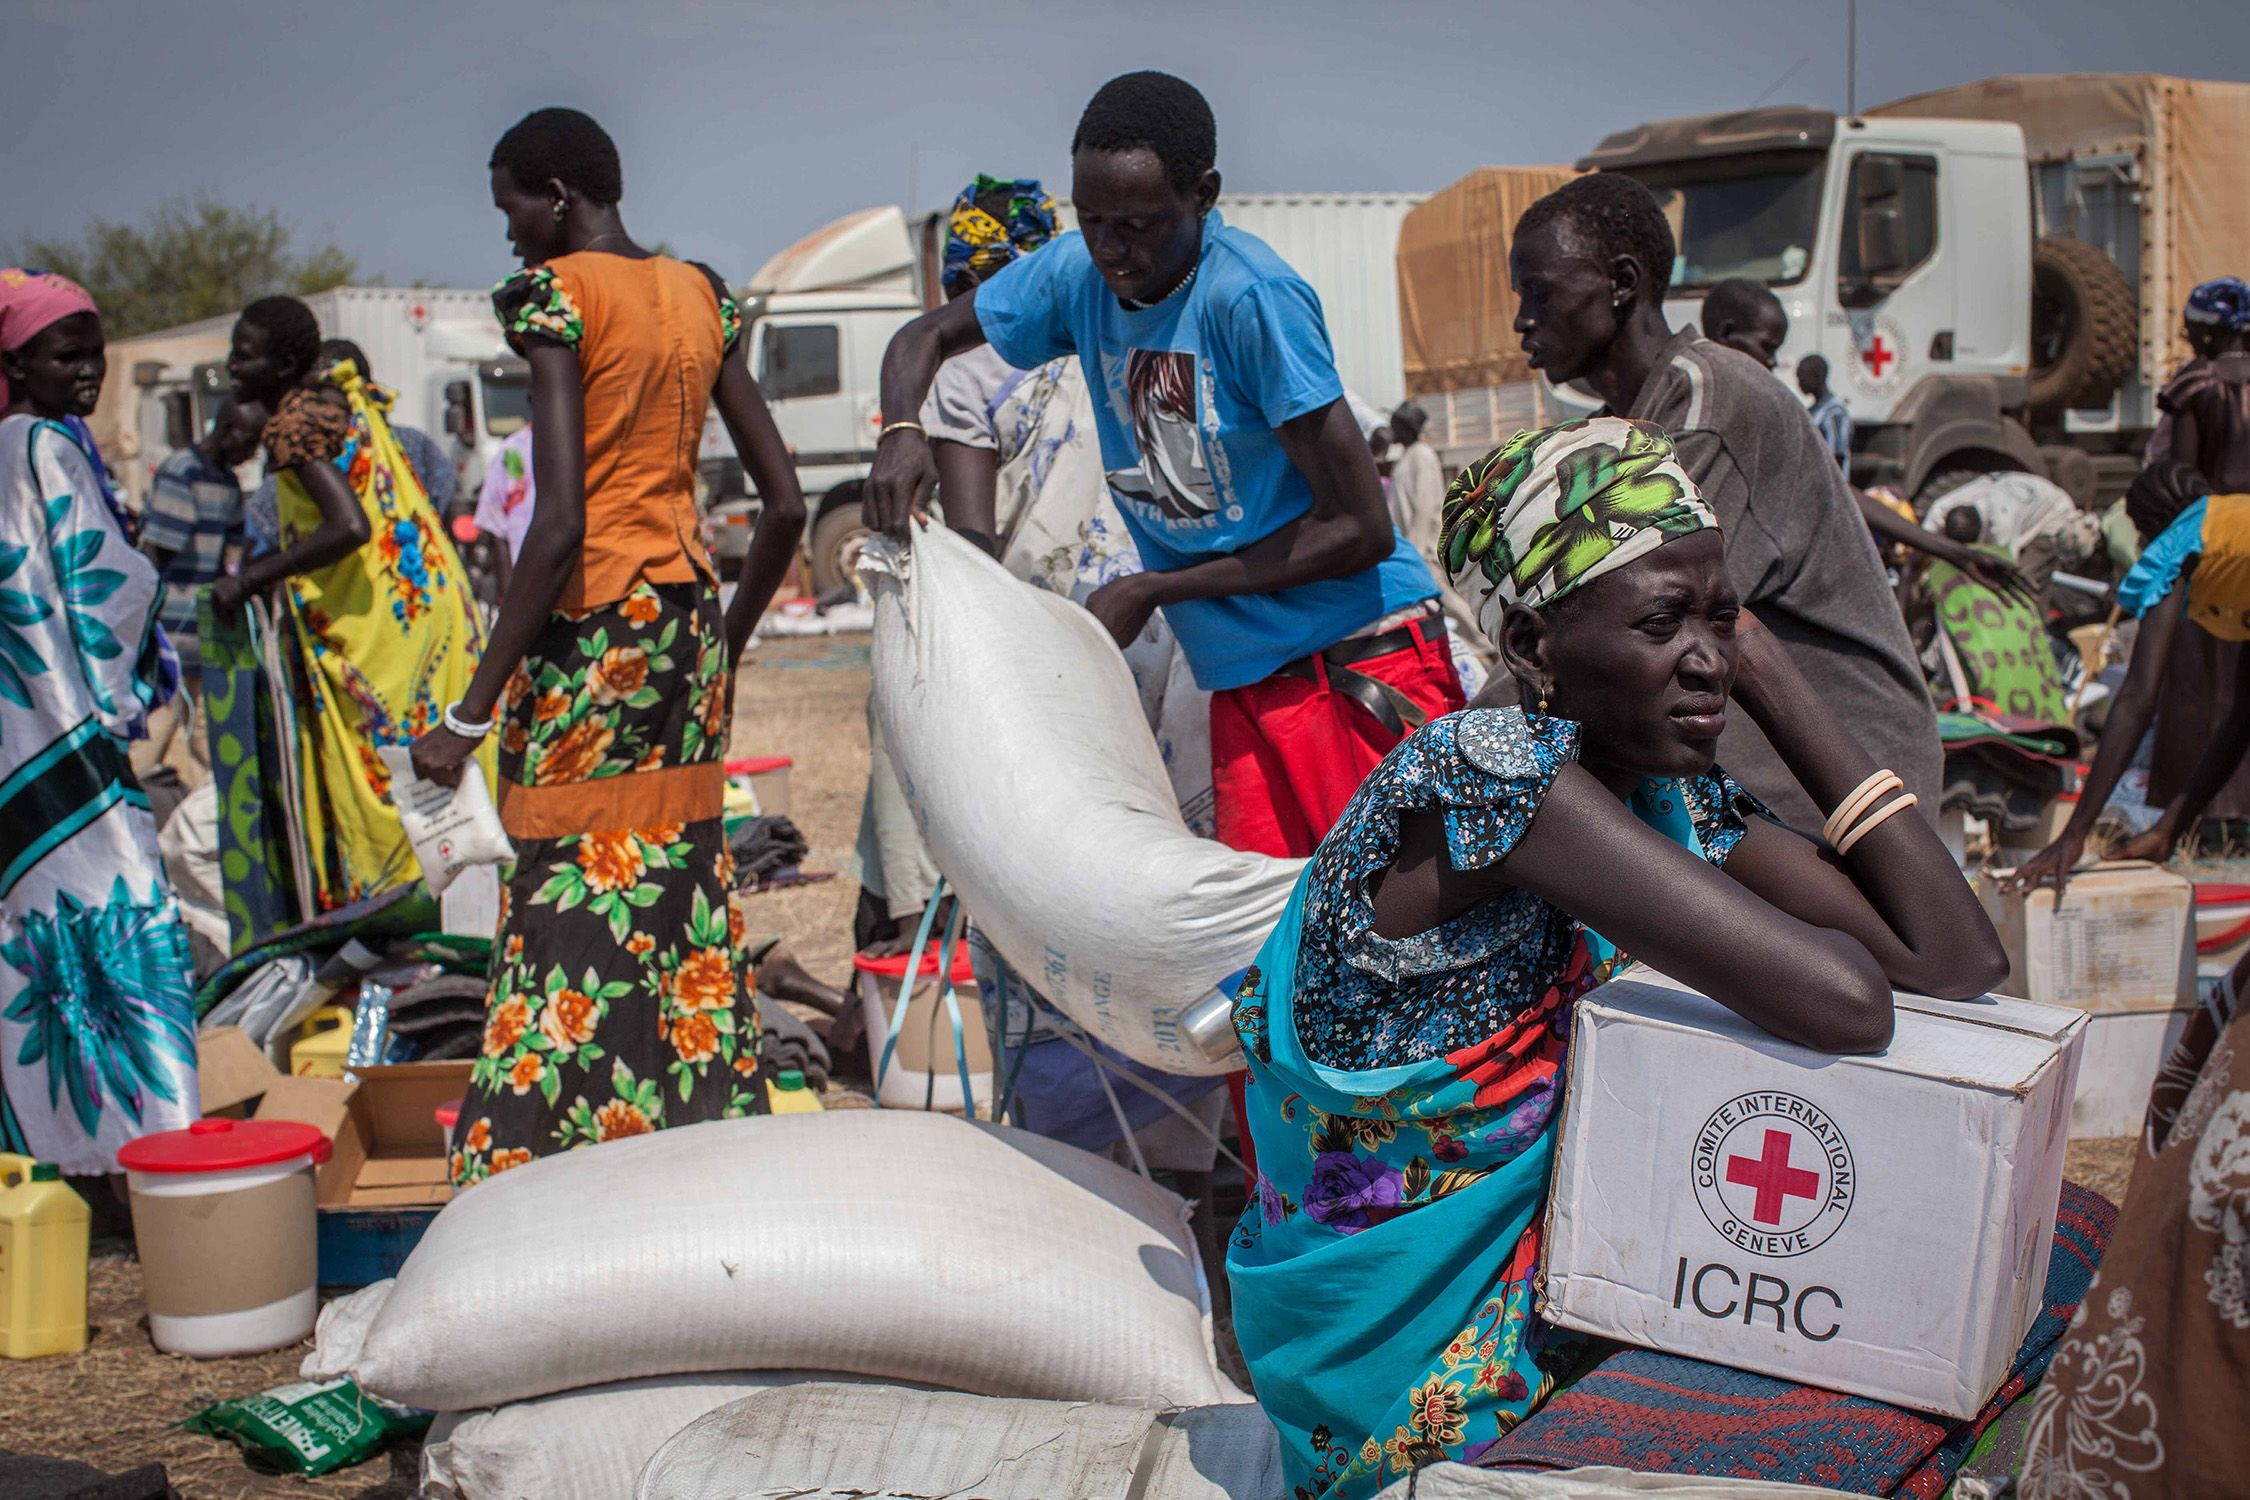 aid workers in south sudan - UN: South Sudan needs $61m to respond to devastating flood